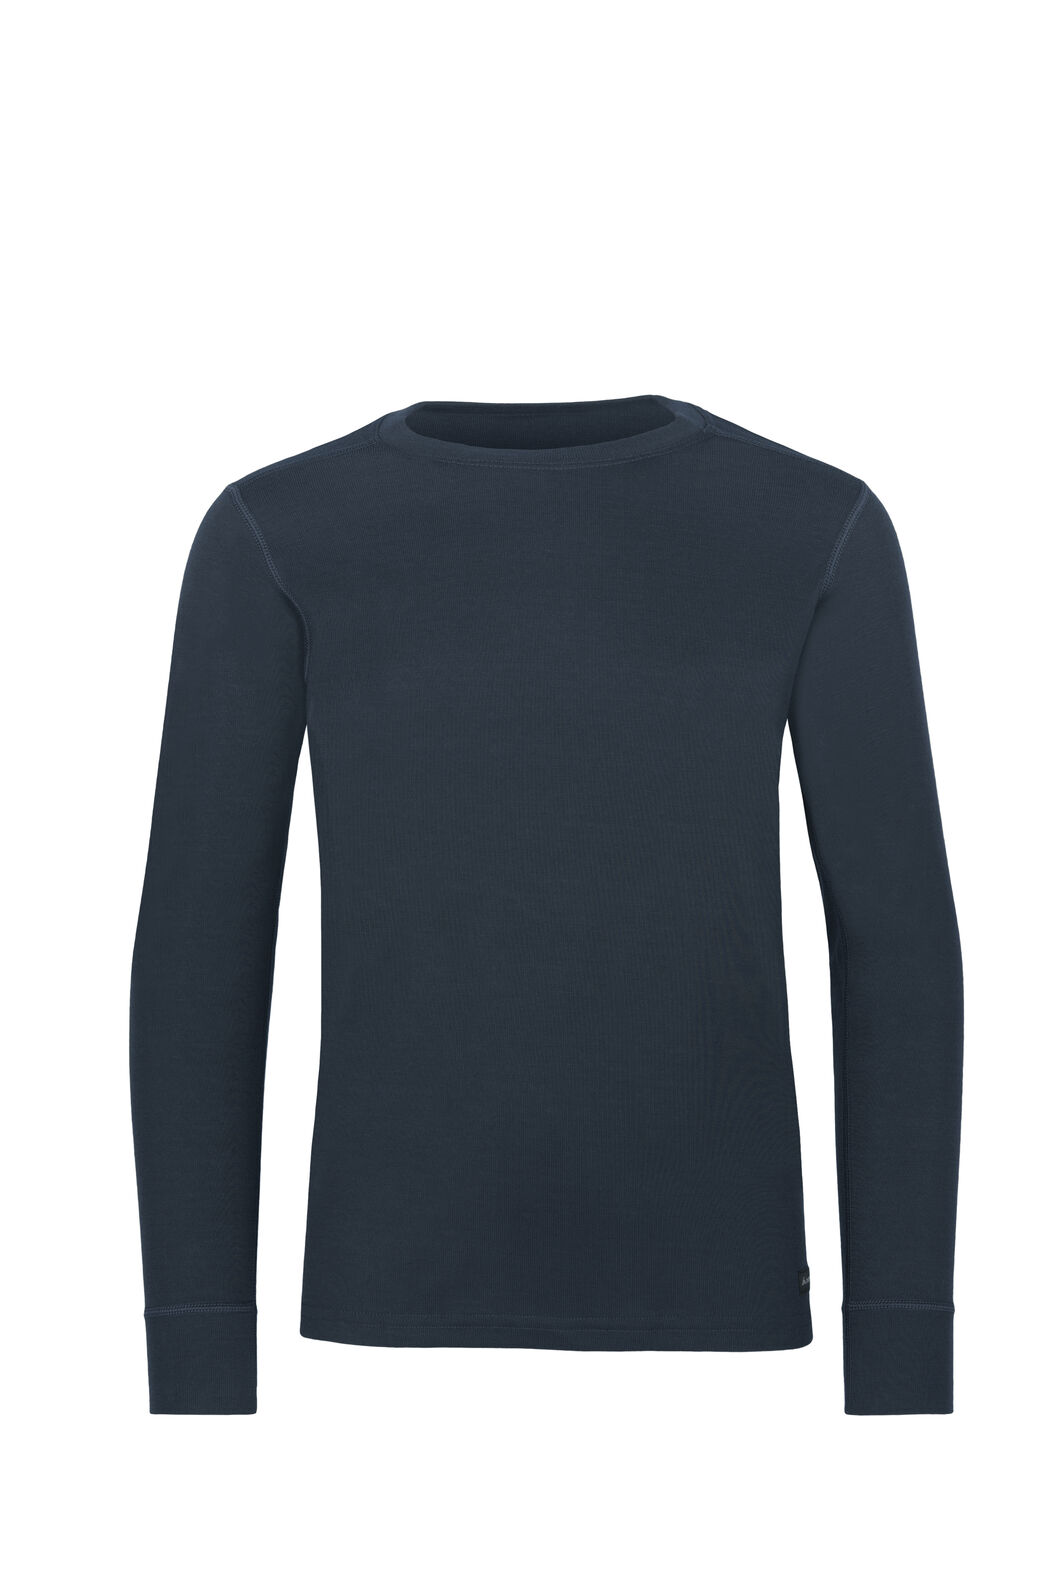 Macpac Geothermal Long Sleeve Top — Kids', Dress Blue, hi-res